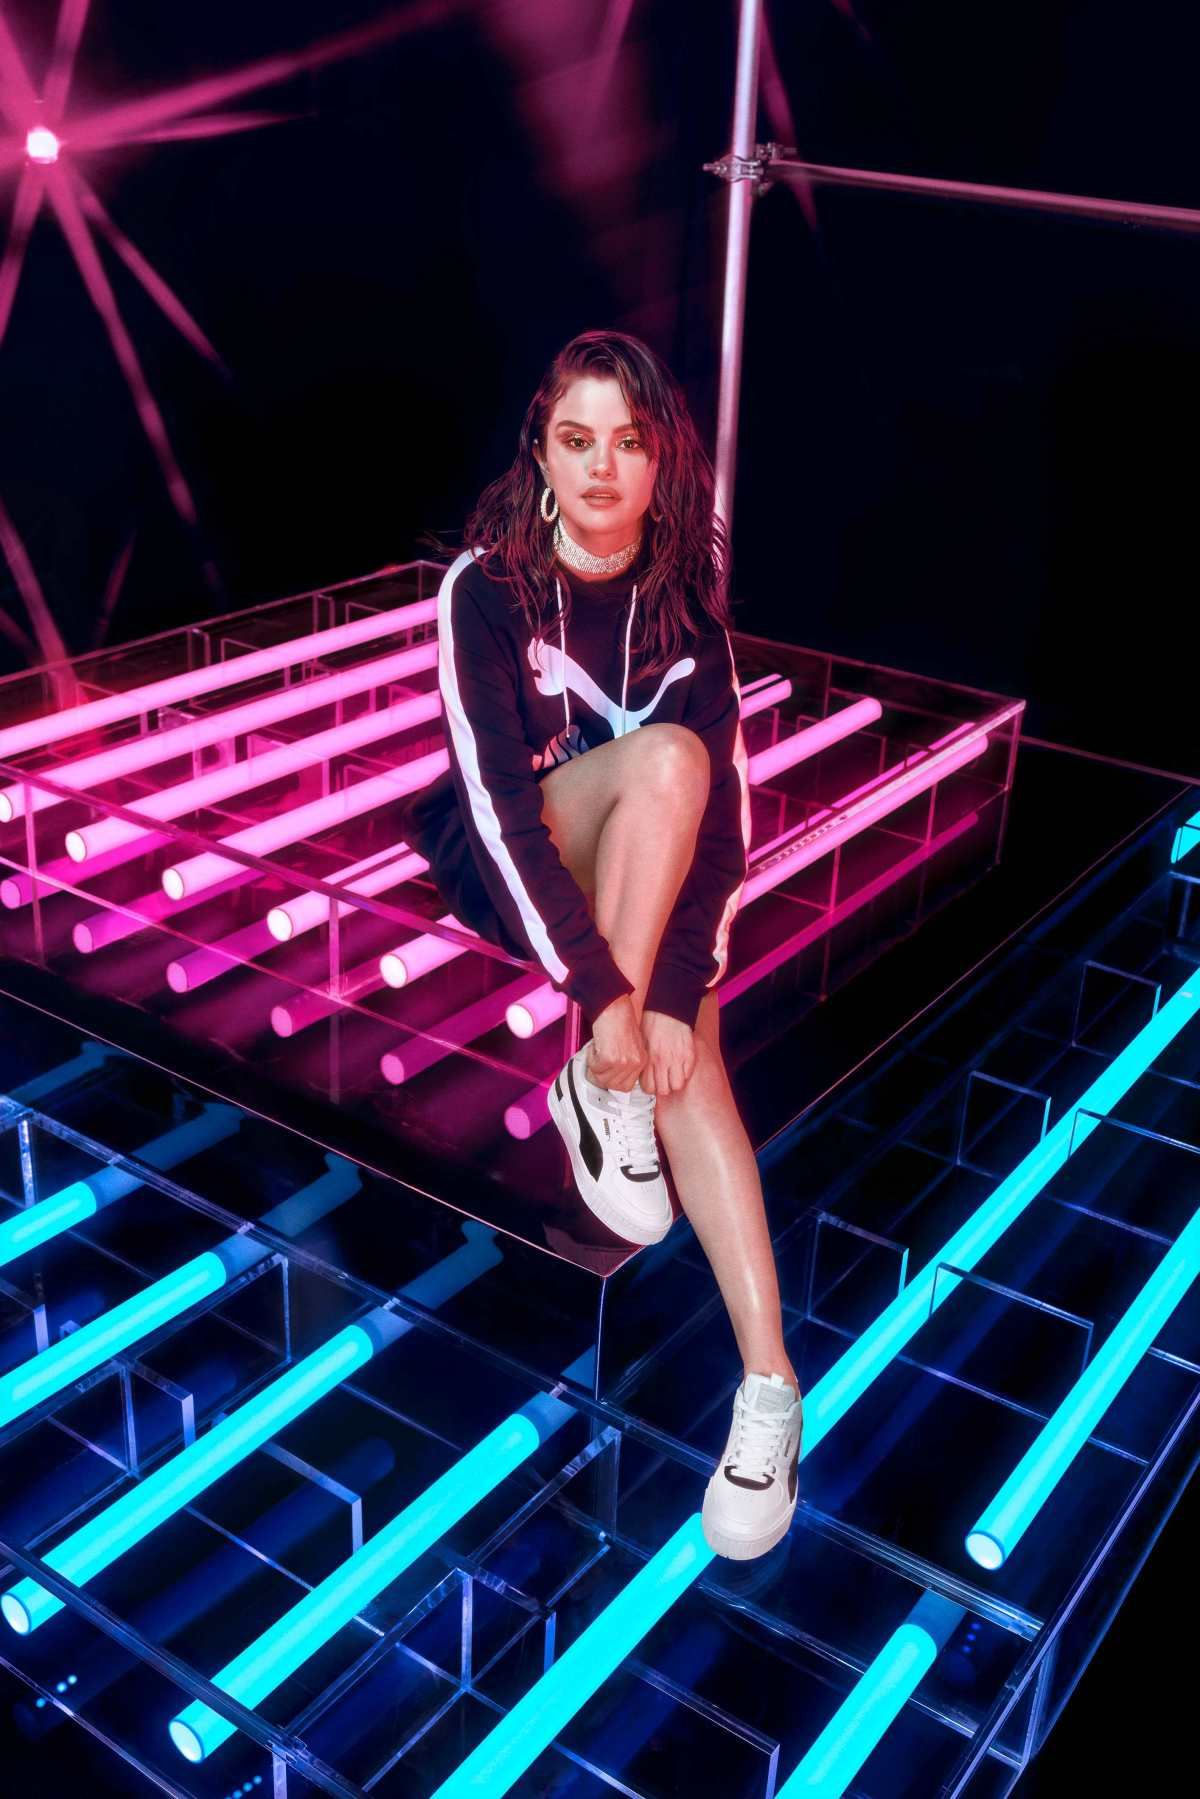 Selena Gomez poses for PUMA Spring/Summer 2020 'Cali Sport Heritage' Collection